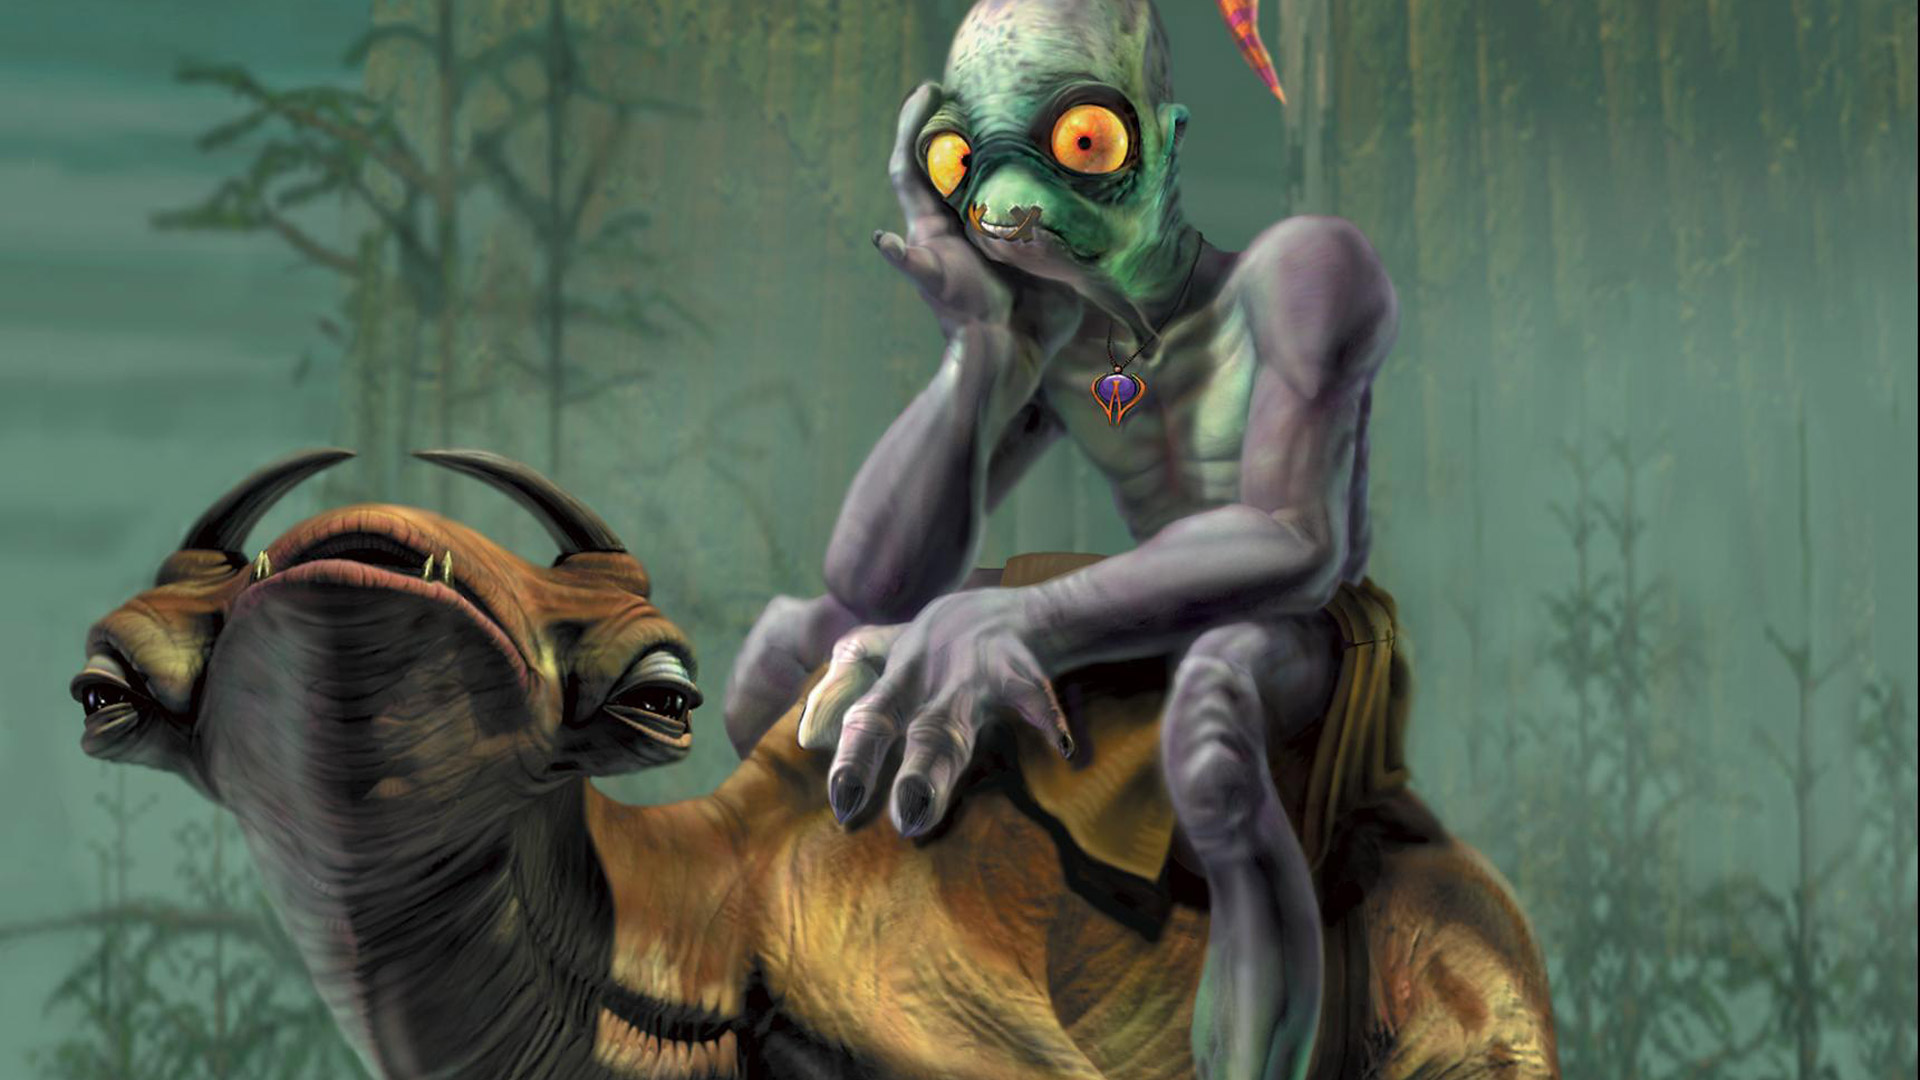 Free Oddworld: Abe's Oddysee Wallpaper in 1920x1080